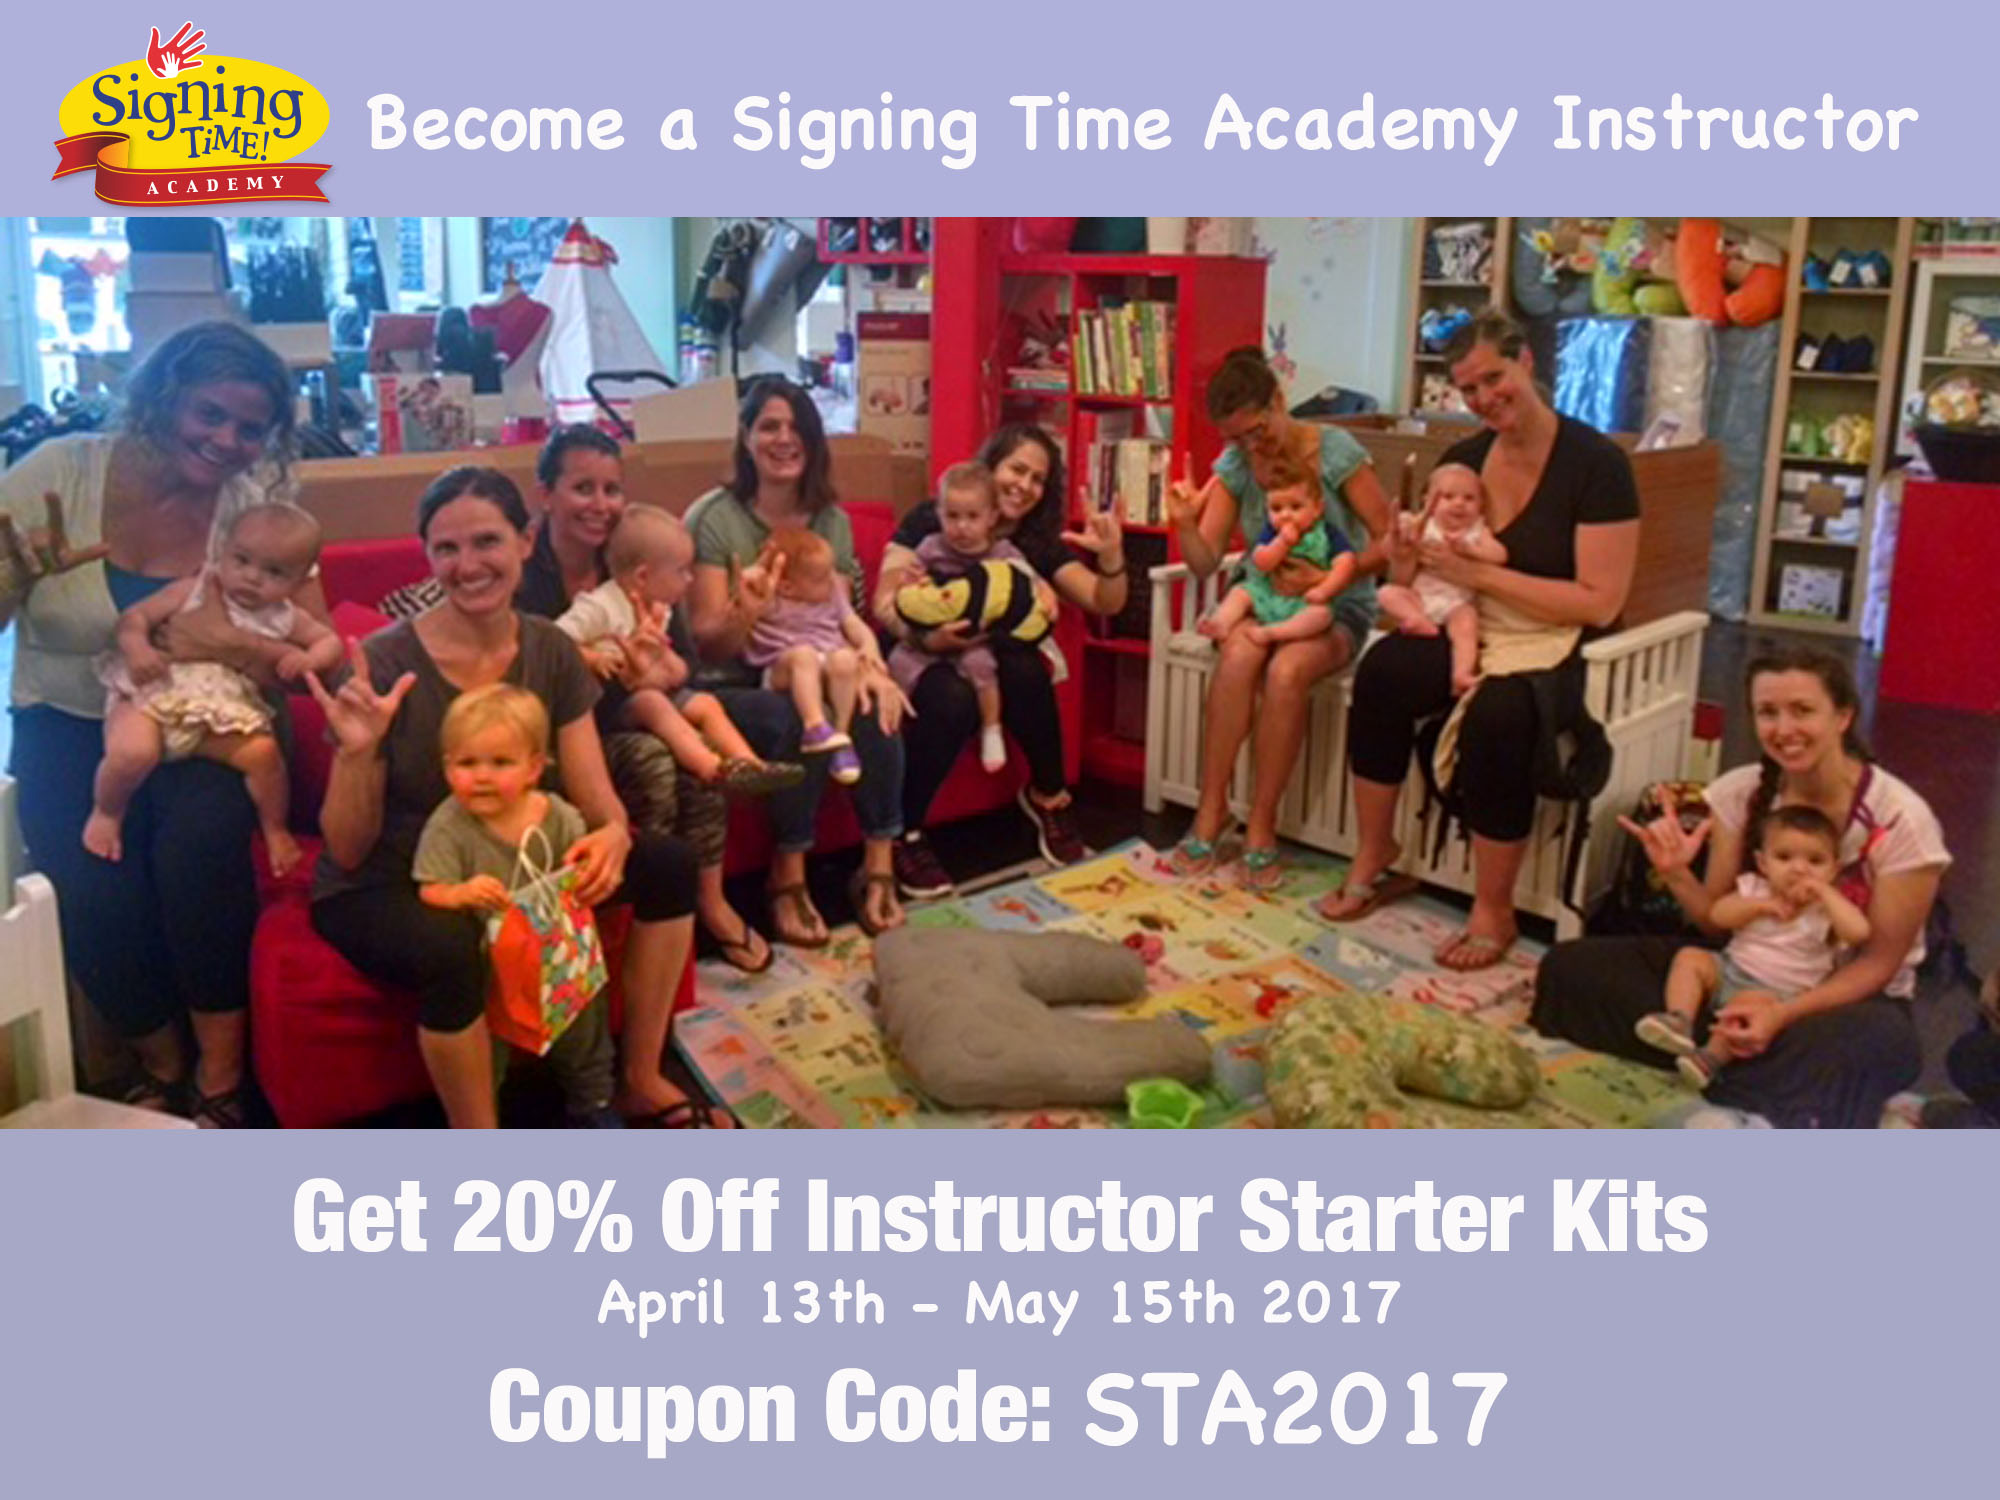 Save 20% on Signing Time Academy Instructor Starter Kits